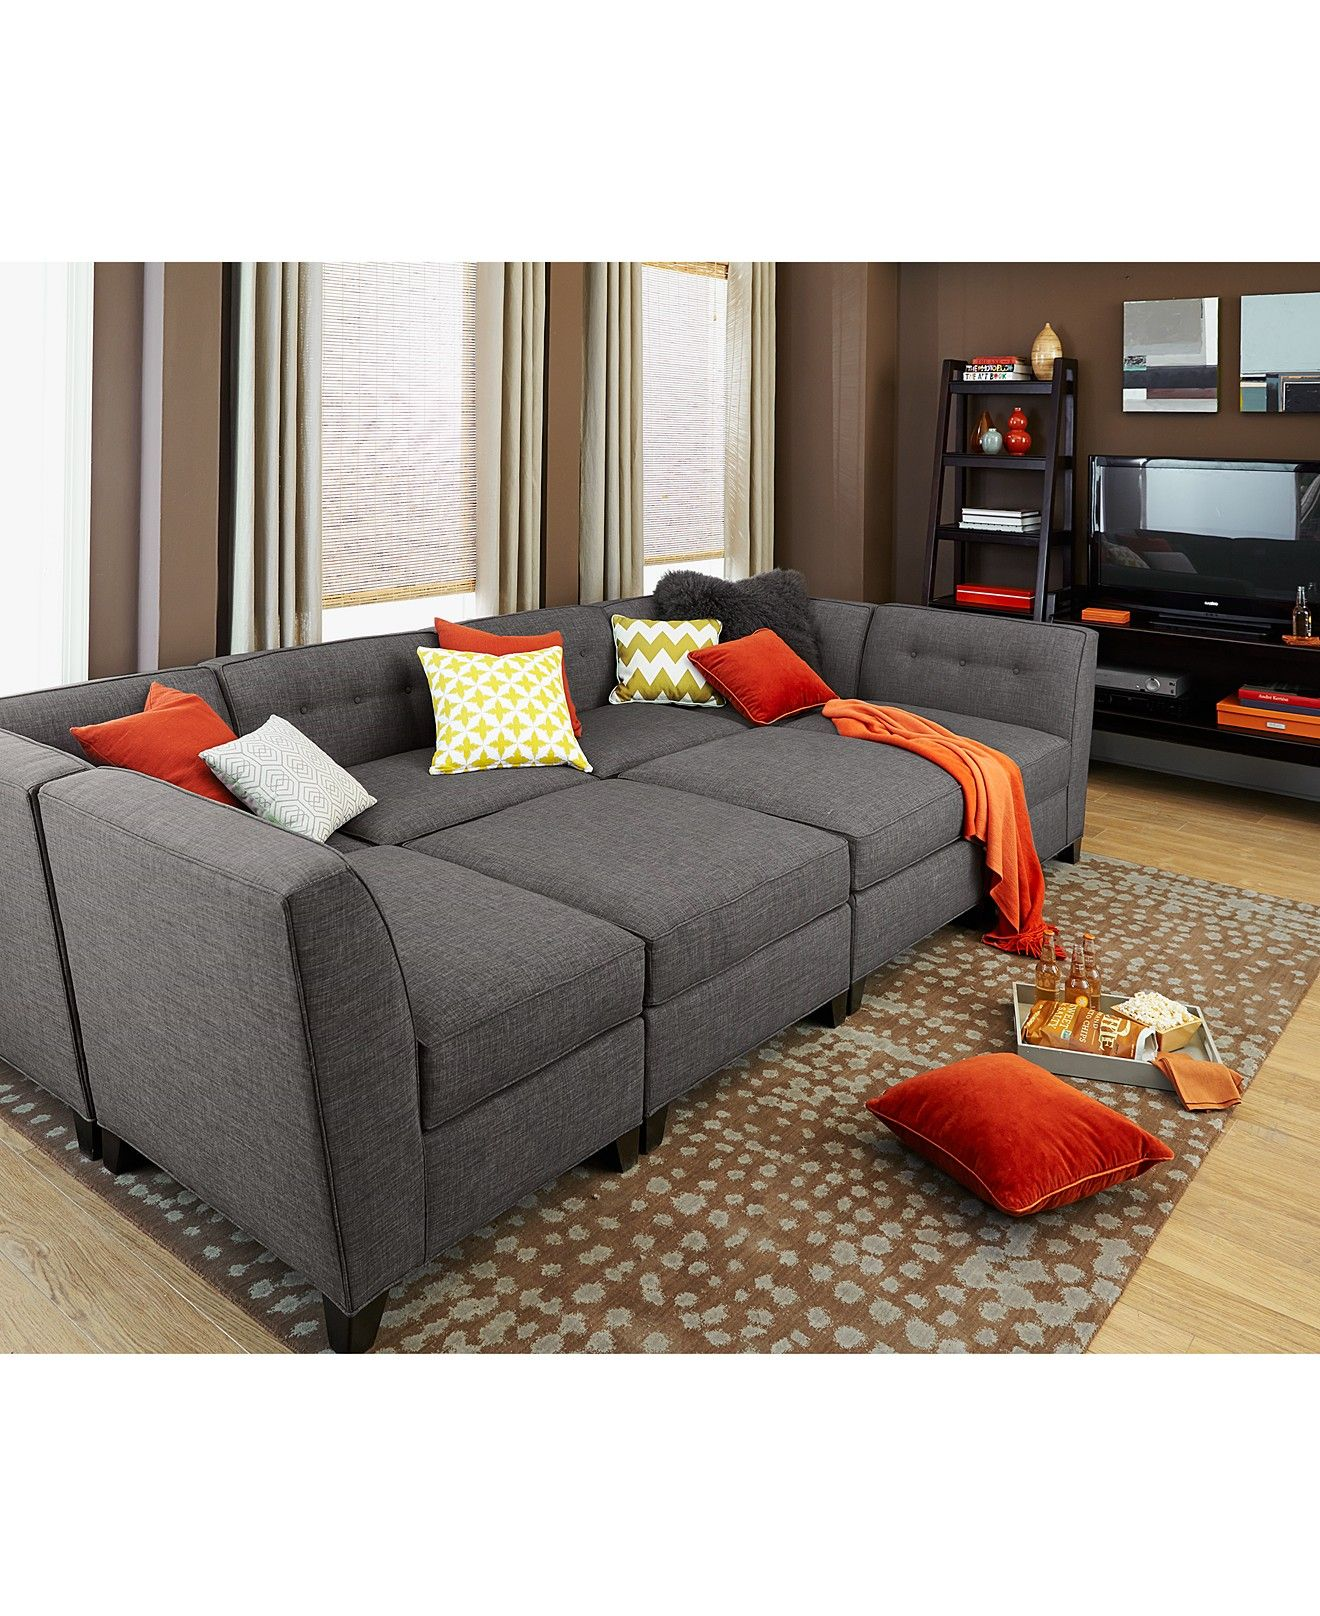 harper fabric 6 piece modular sectional sofa large small doorway chaise custom colors couches sofas furniture macy s